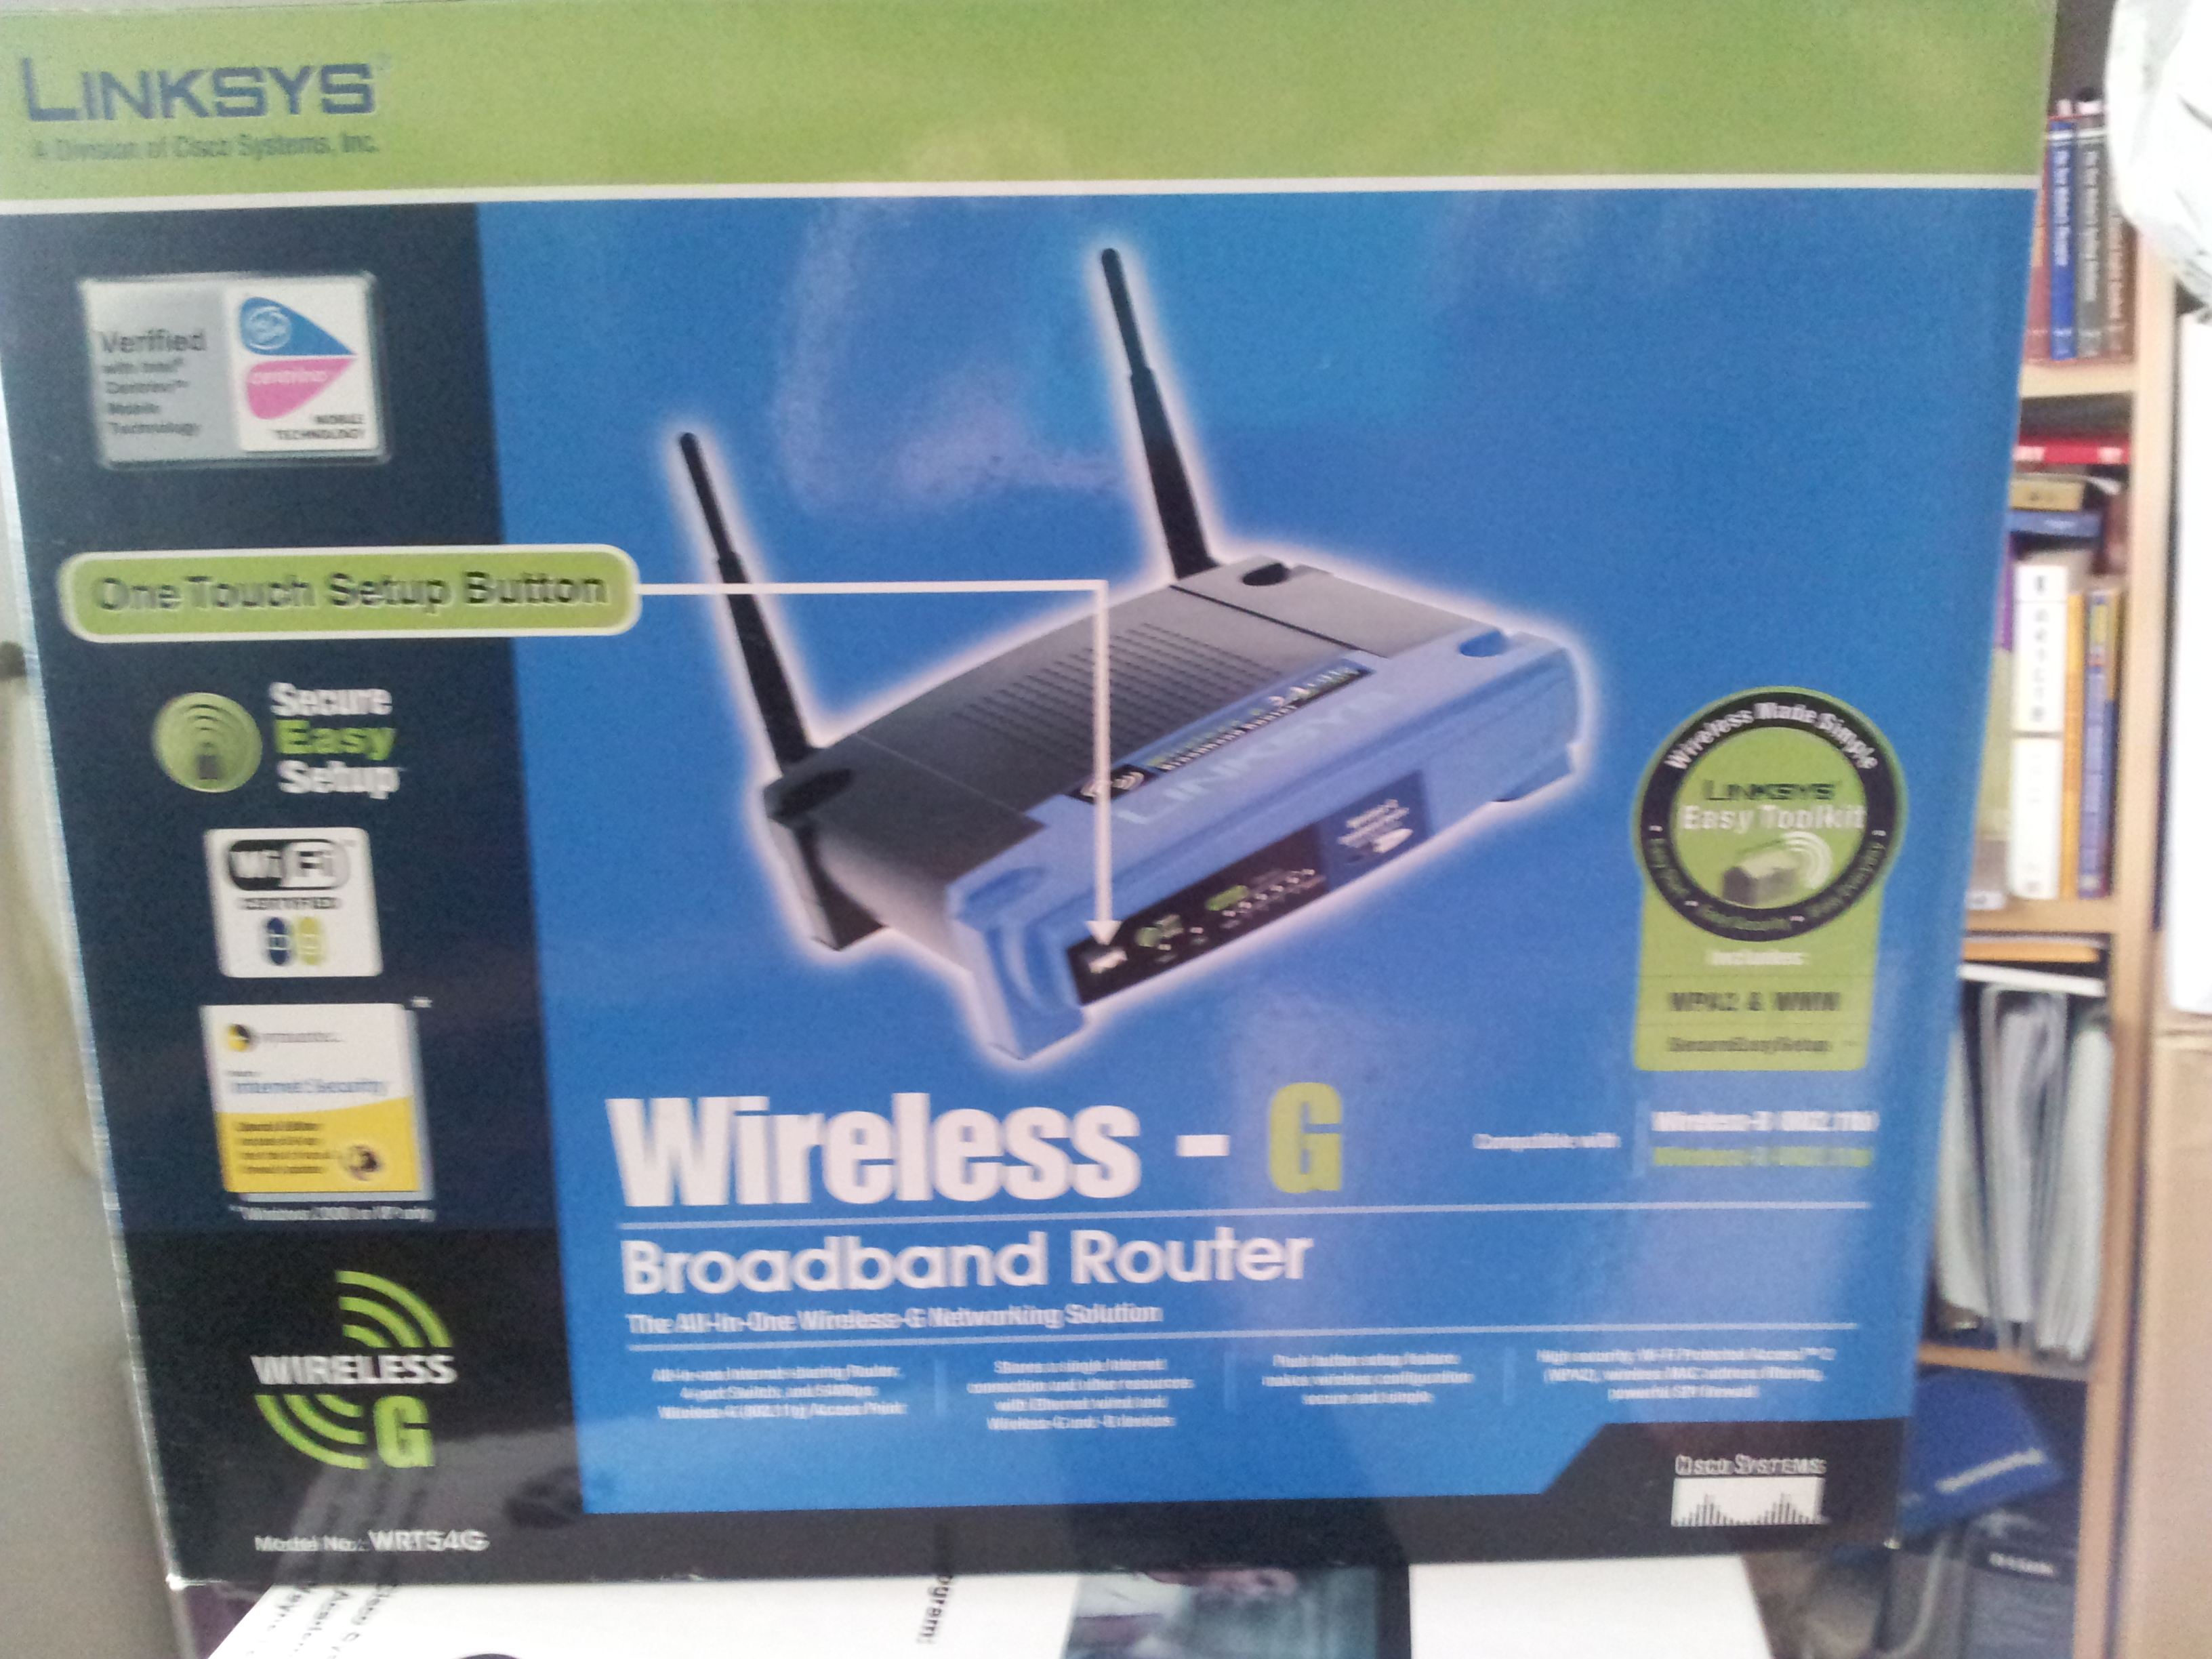 FOR SALE: Linksys Wireless G Broadband Router